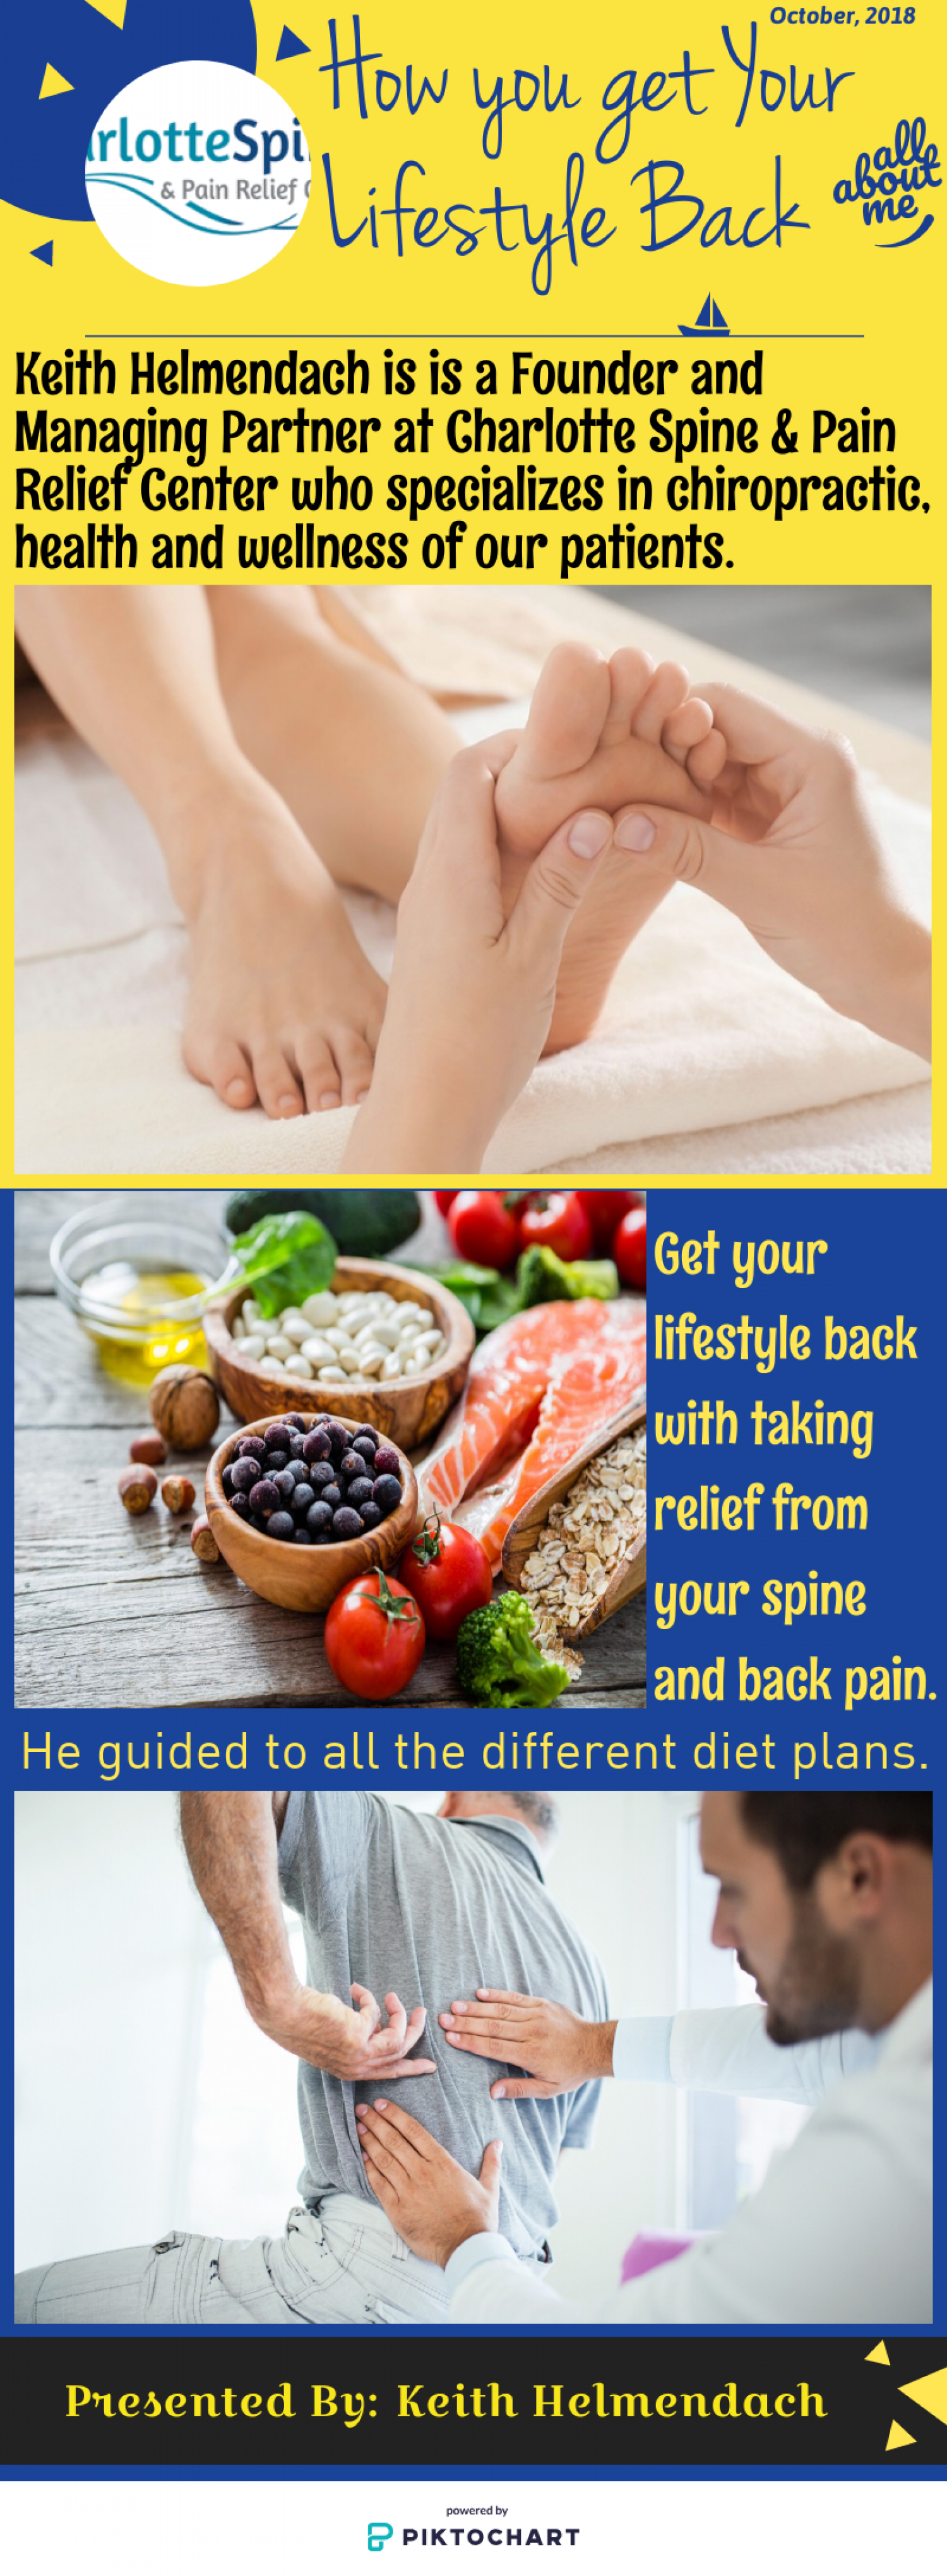 How you get Your Lifestyle Back- Keith Helmendach Infographic